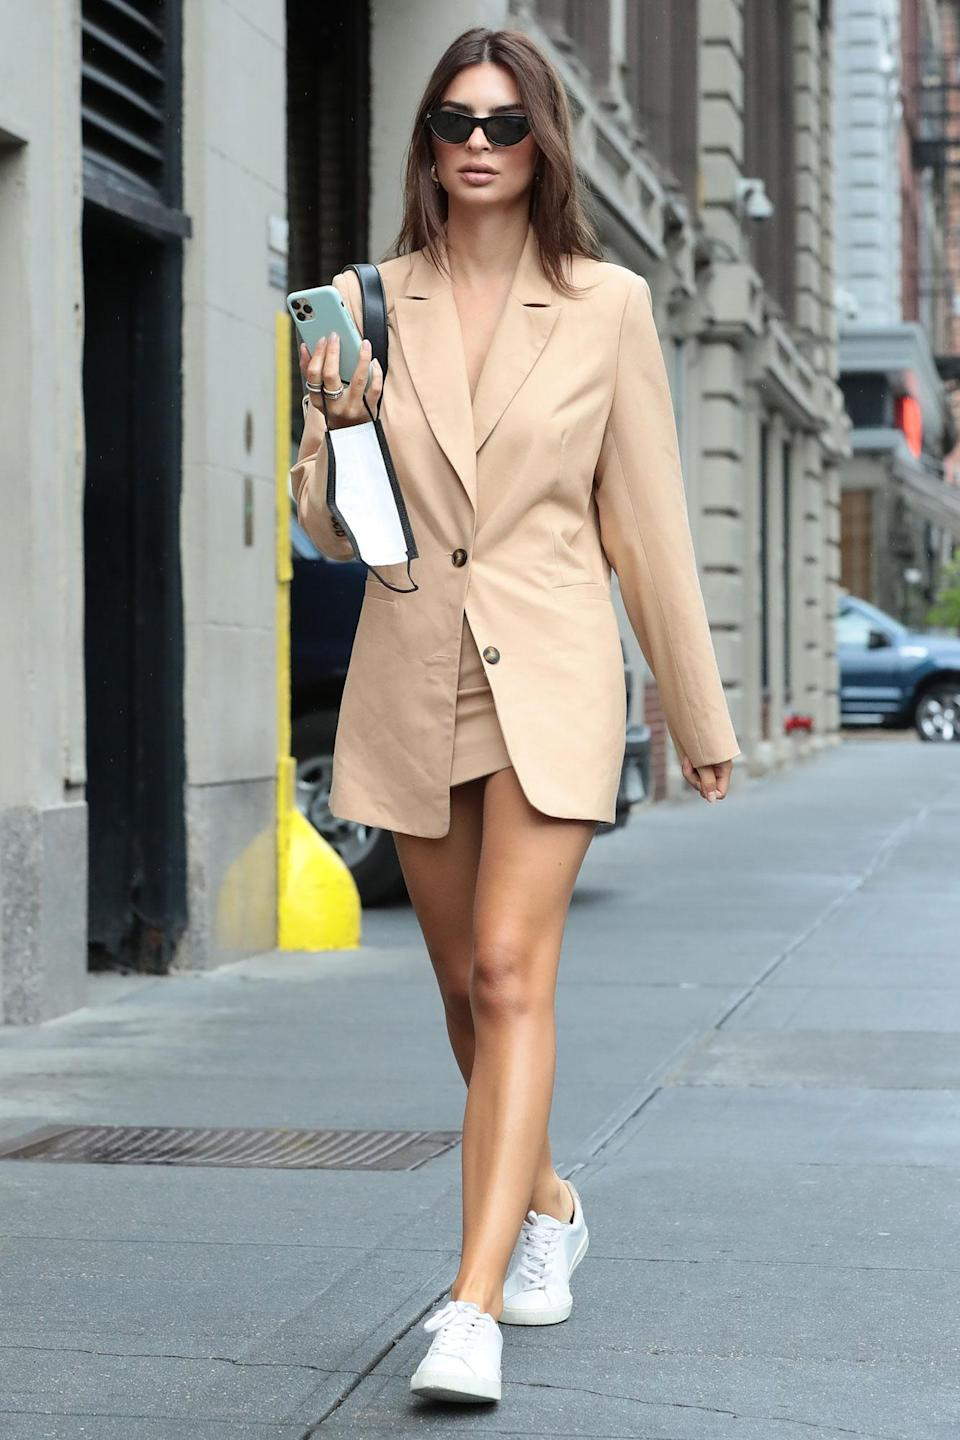 <p>Emily Ratajkowski looks chic in an oversized blazer during a Friday stroll in New York City.</p>